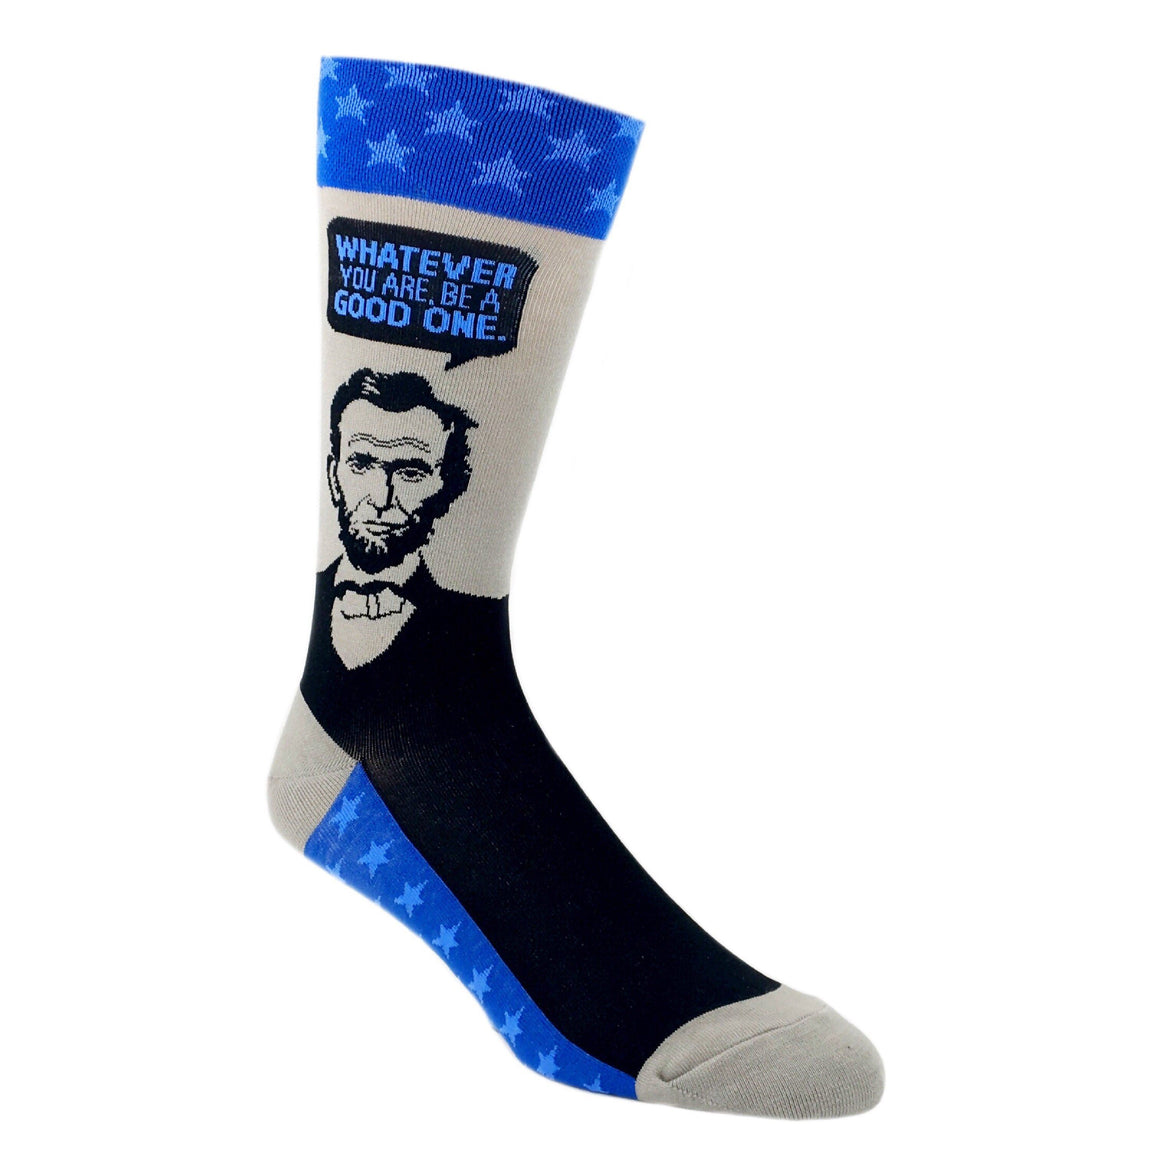 Abe Lincoln Quote Socks by Foot Traffic - The Sock Spot